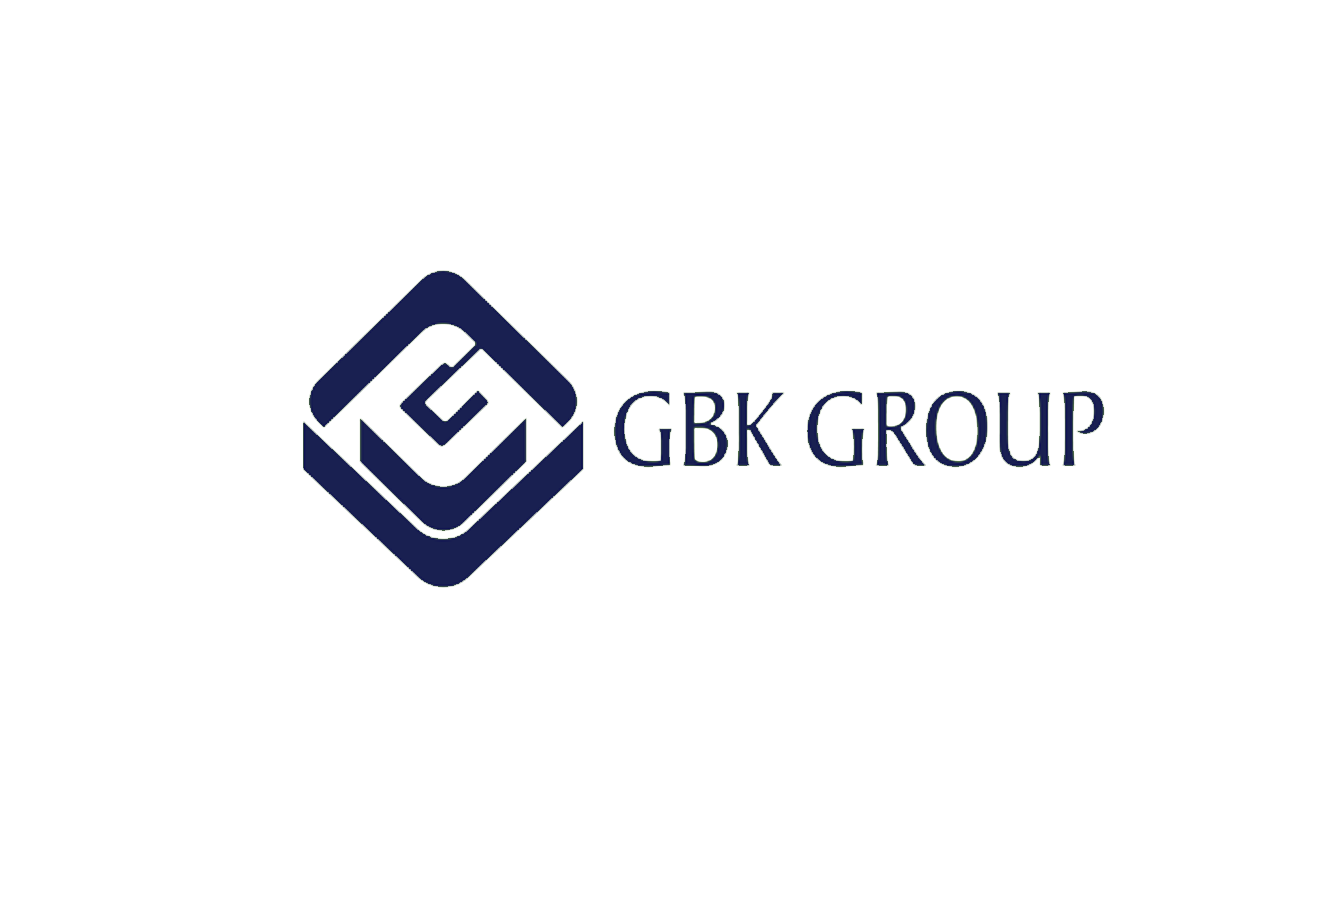 gbk-group